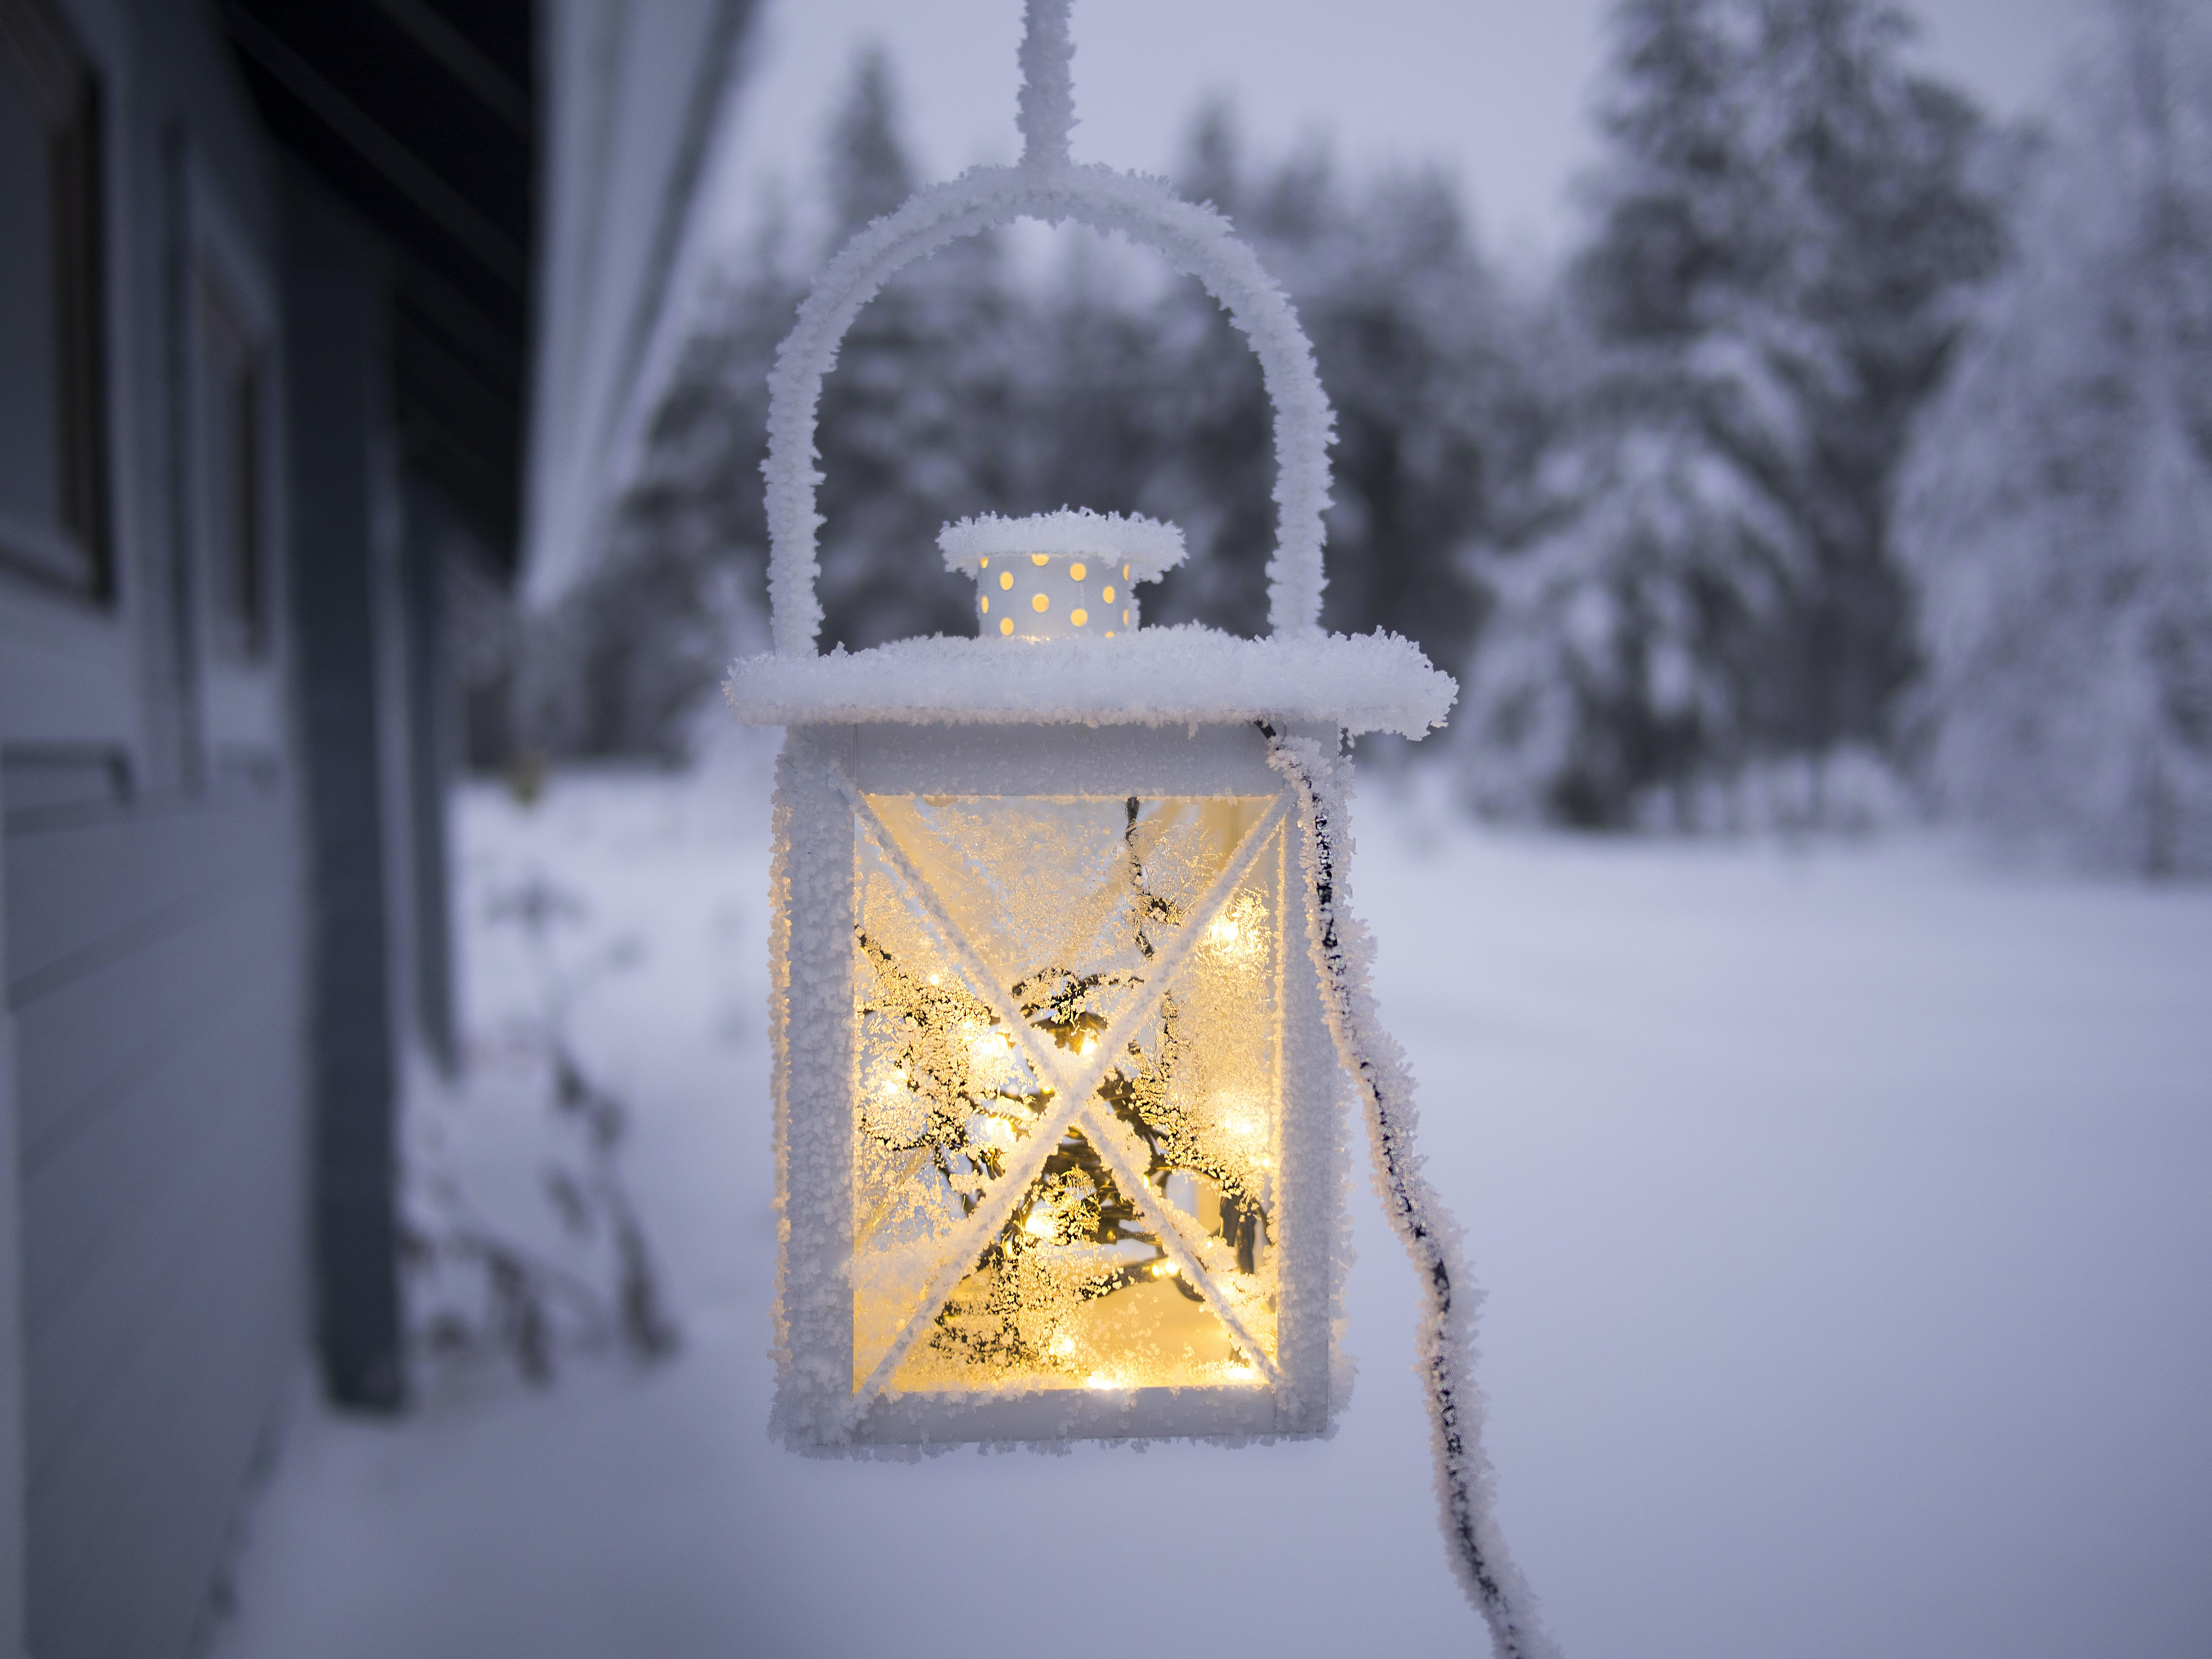 A snow covered lantern outside of a home in Sodankylä